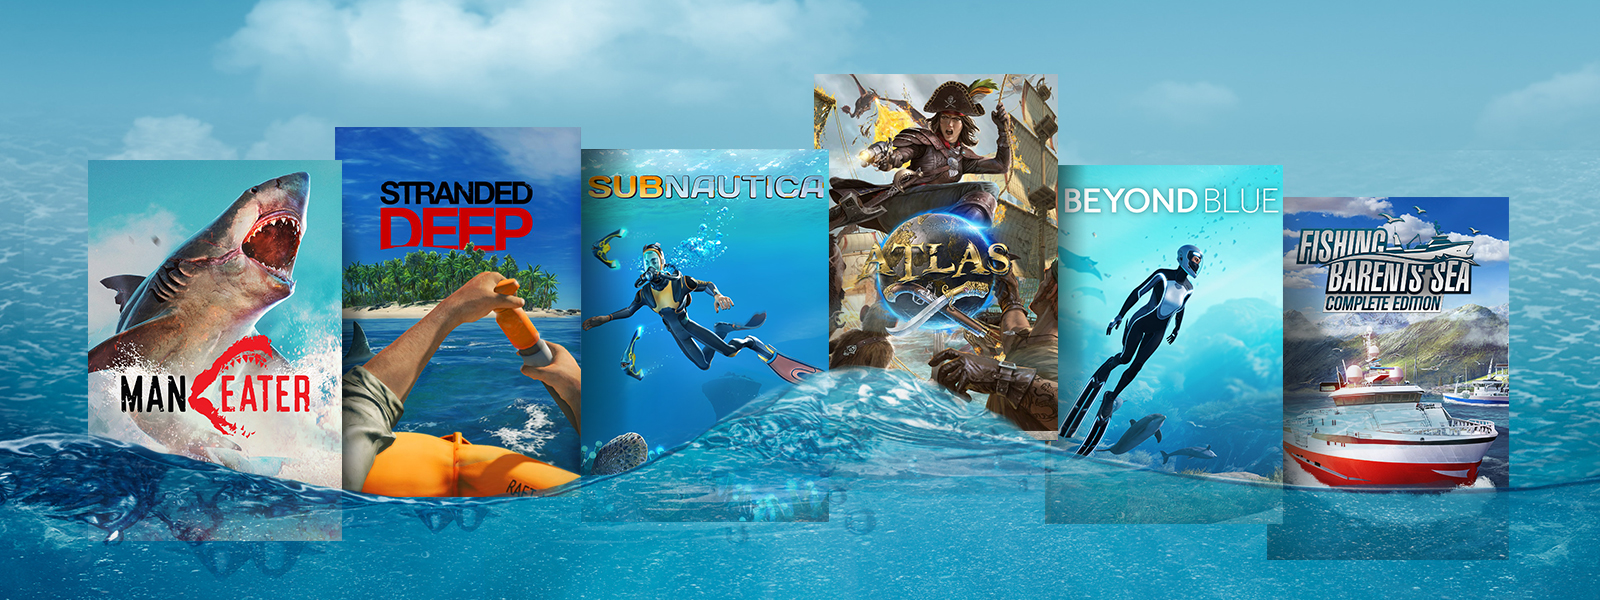 A collage of games floating on water that are part of the Deep Sea Discounts sale, including Subnautica, Atlas, and Beyond Blue.